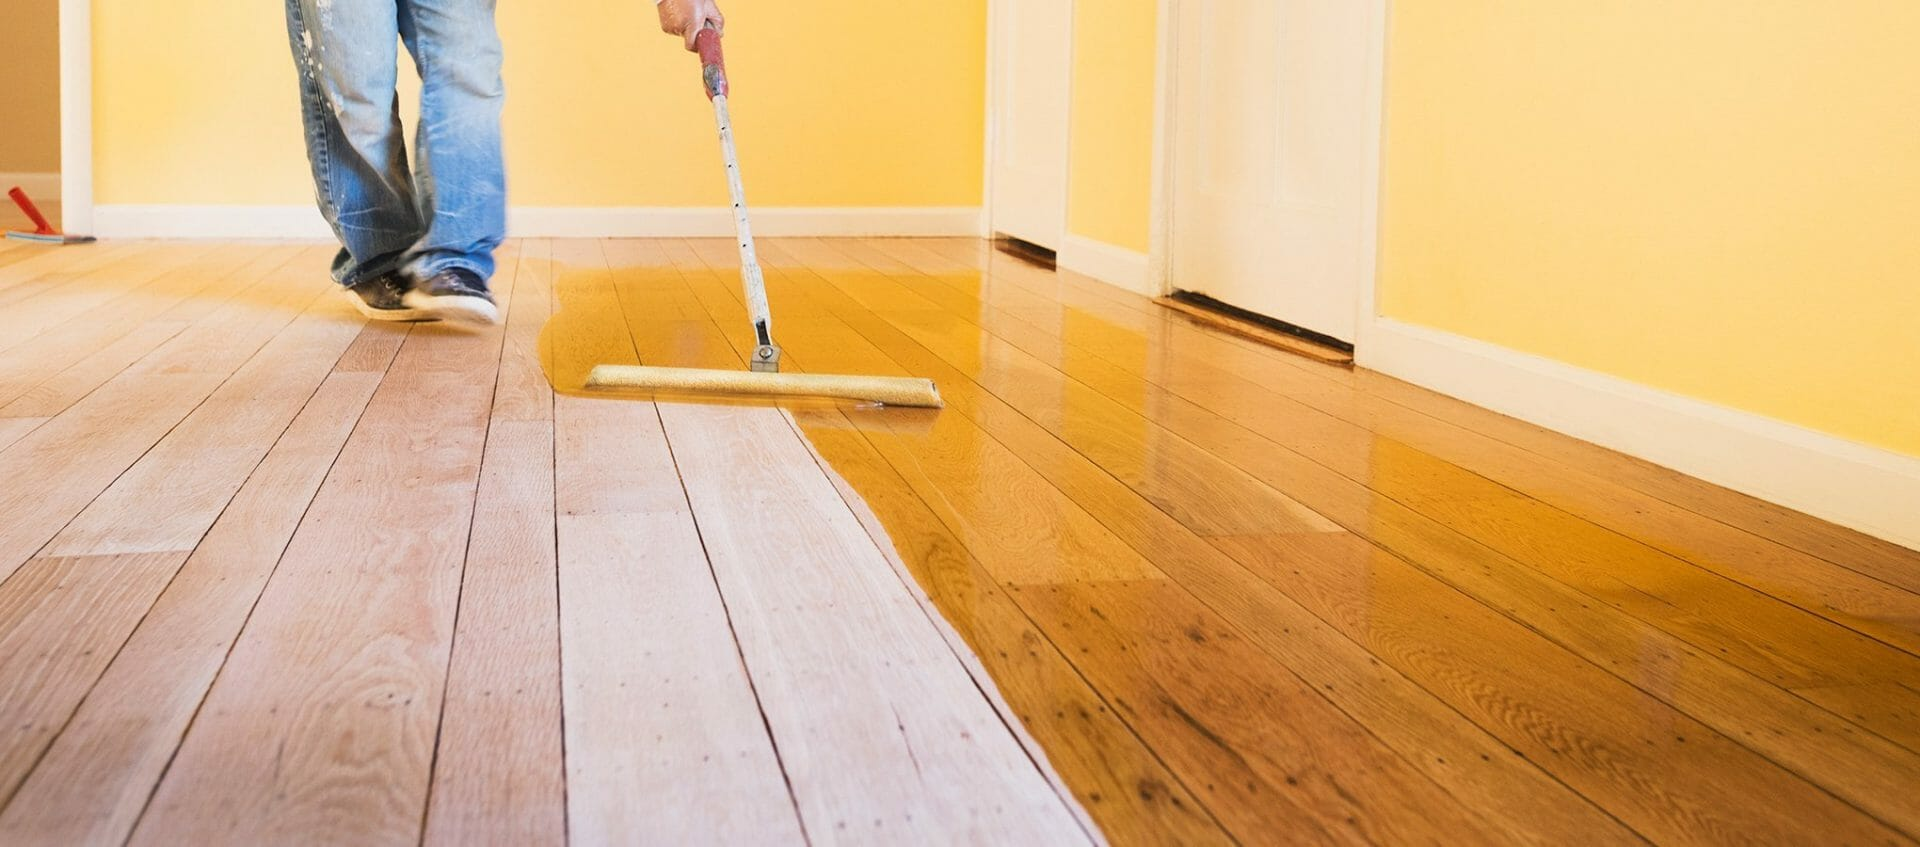 How Important Is It To Seal Wood Flooring Adm Flooring Design